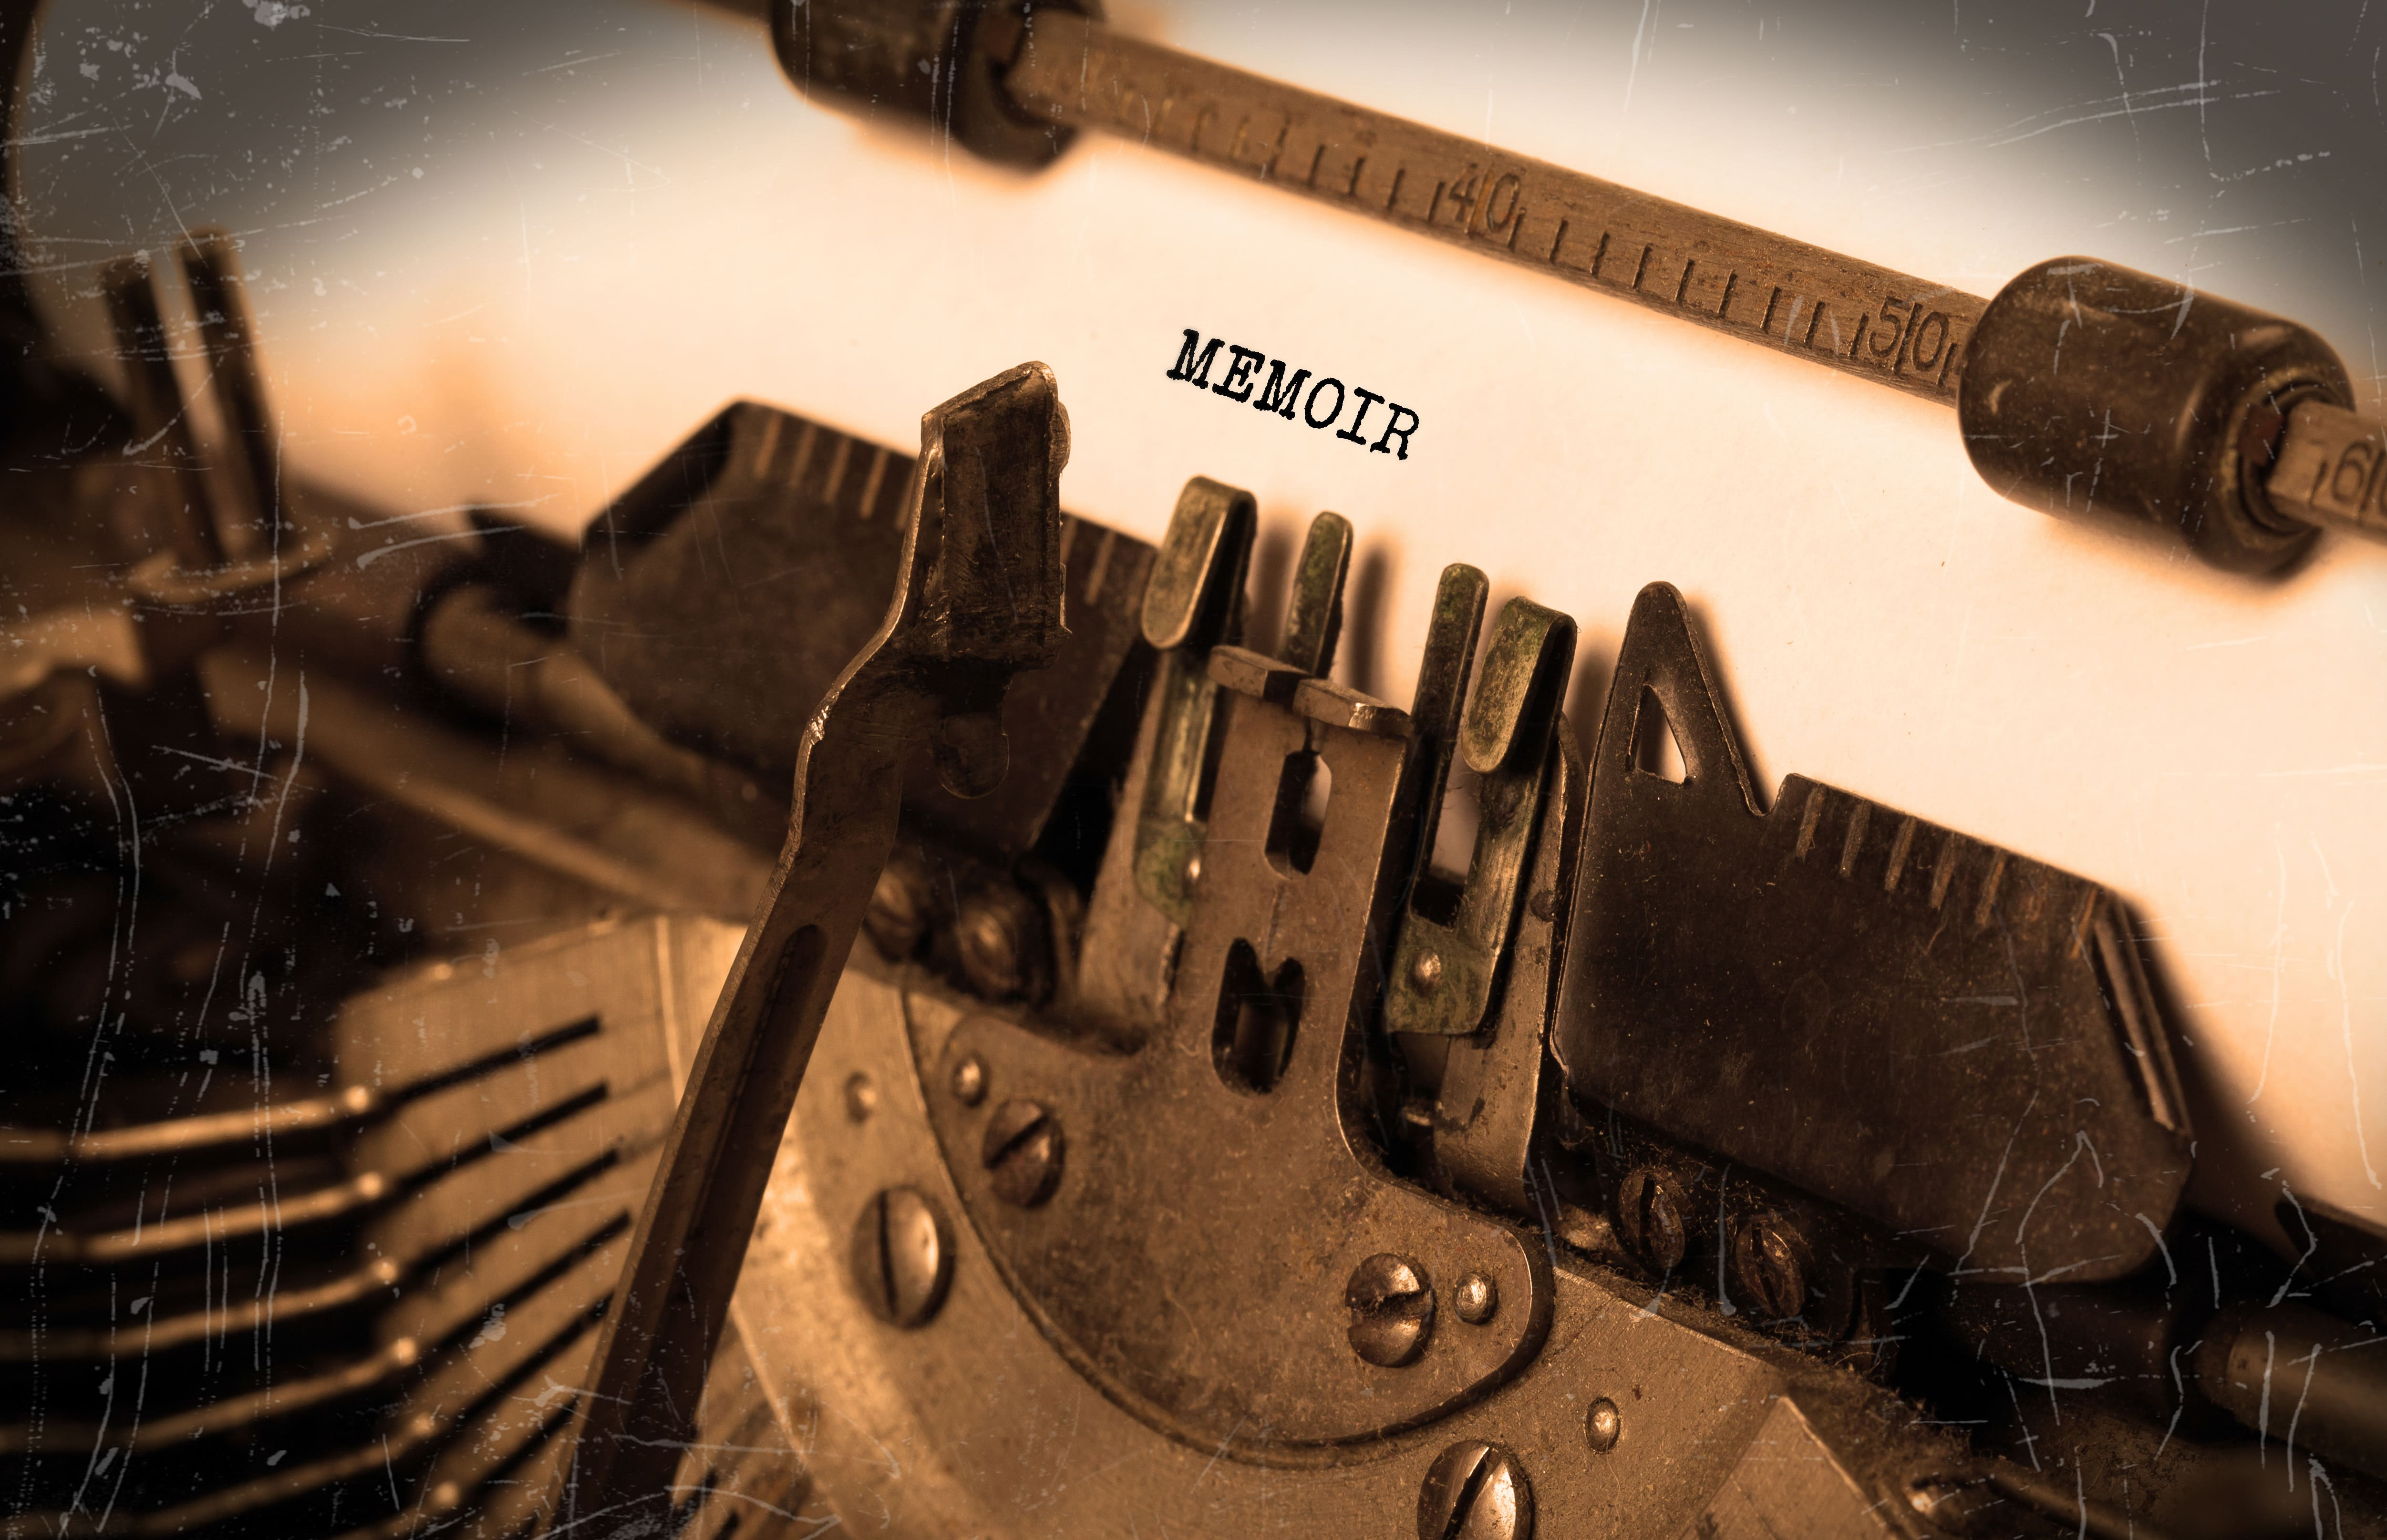 4 Tips for Writing Your Memoirs